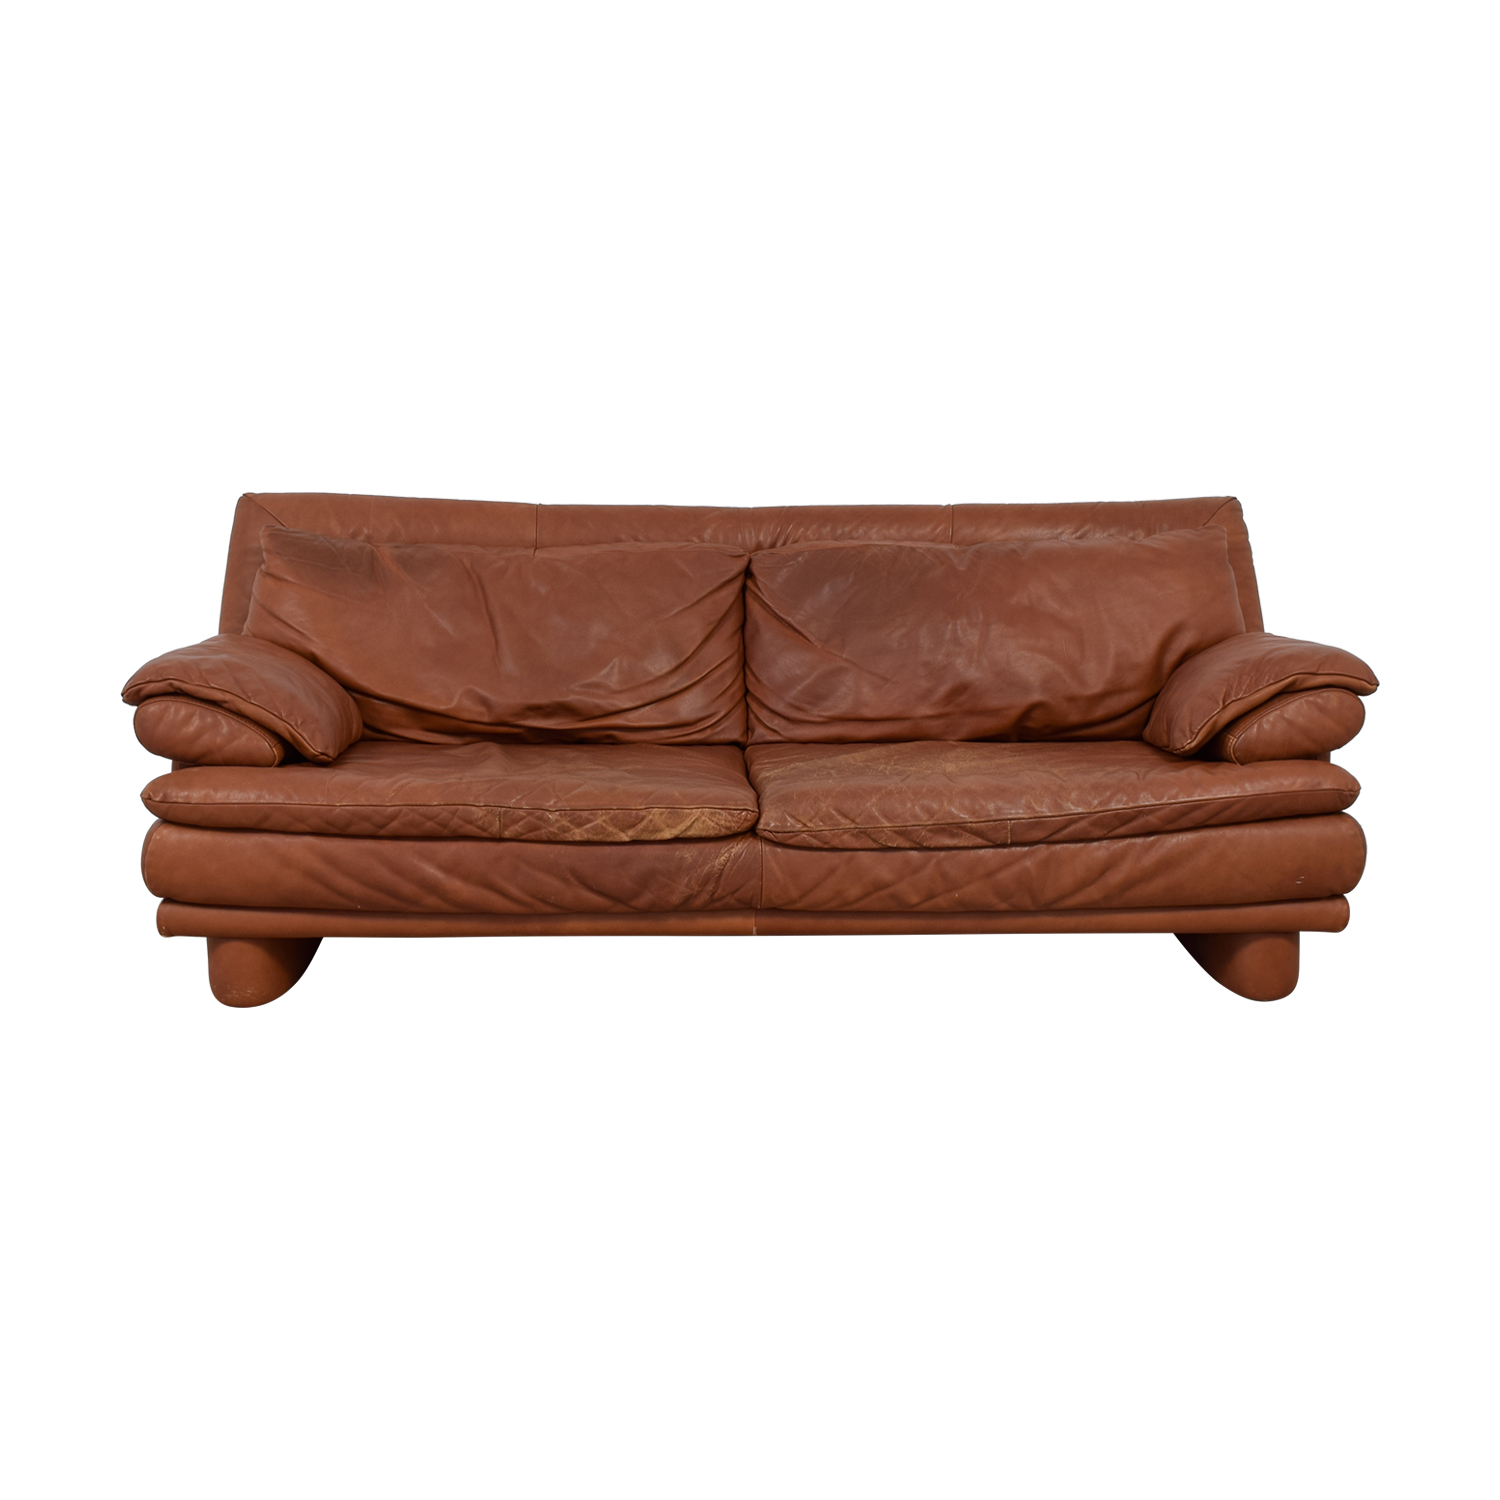 Genial Shop Maurice Villency Brown Leather Sofa Maurice Villency Classic Sofas ...